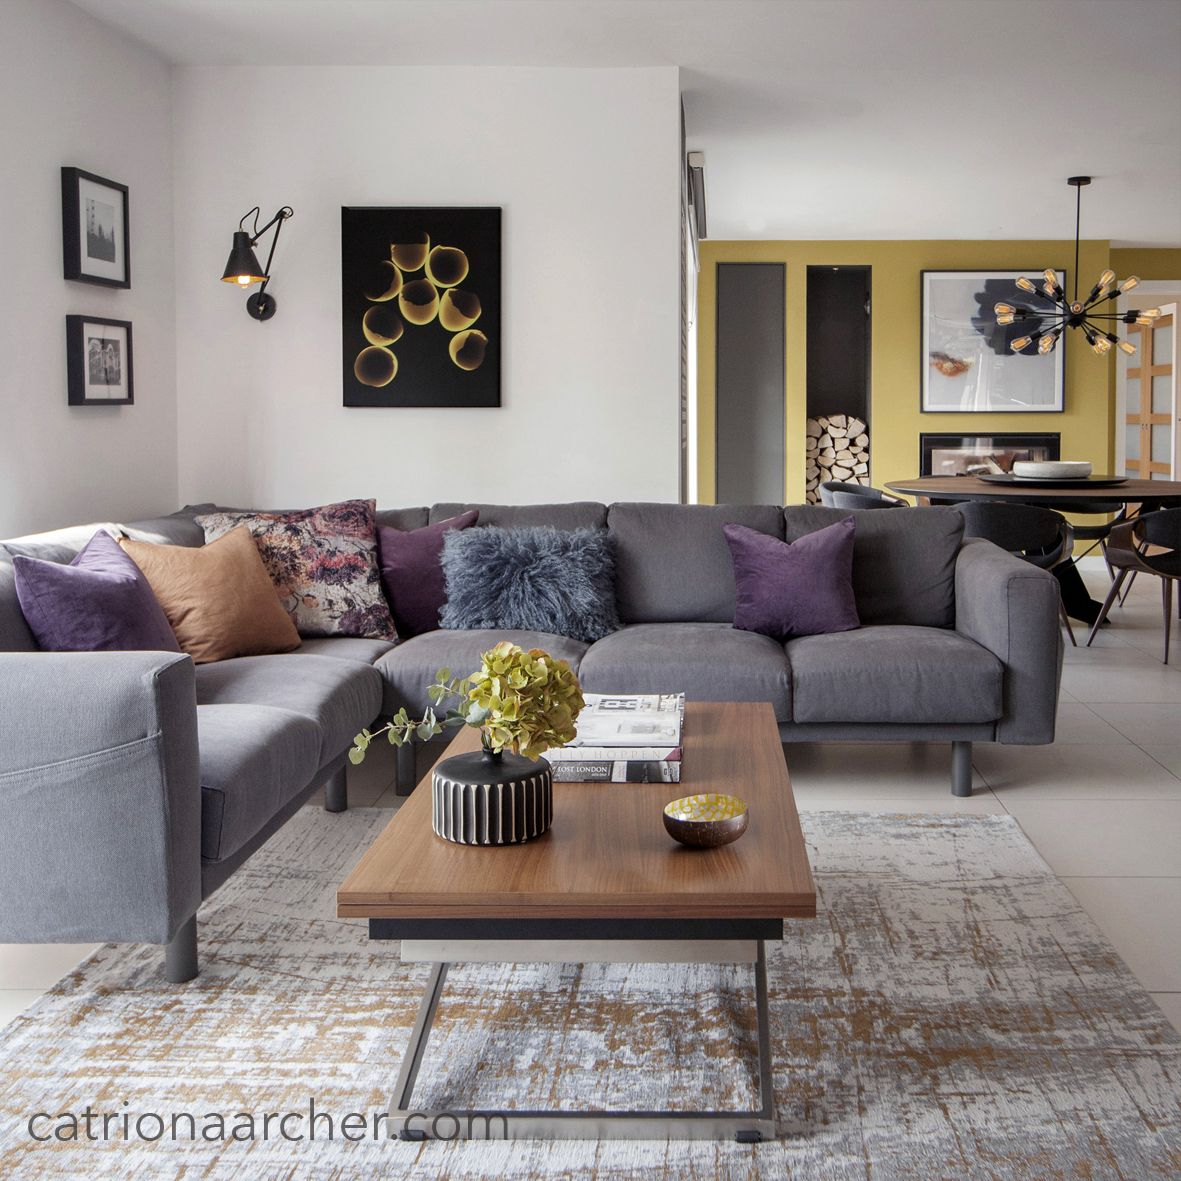 Open plan sitting room with grey, rust terracotta and purple